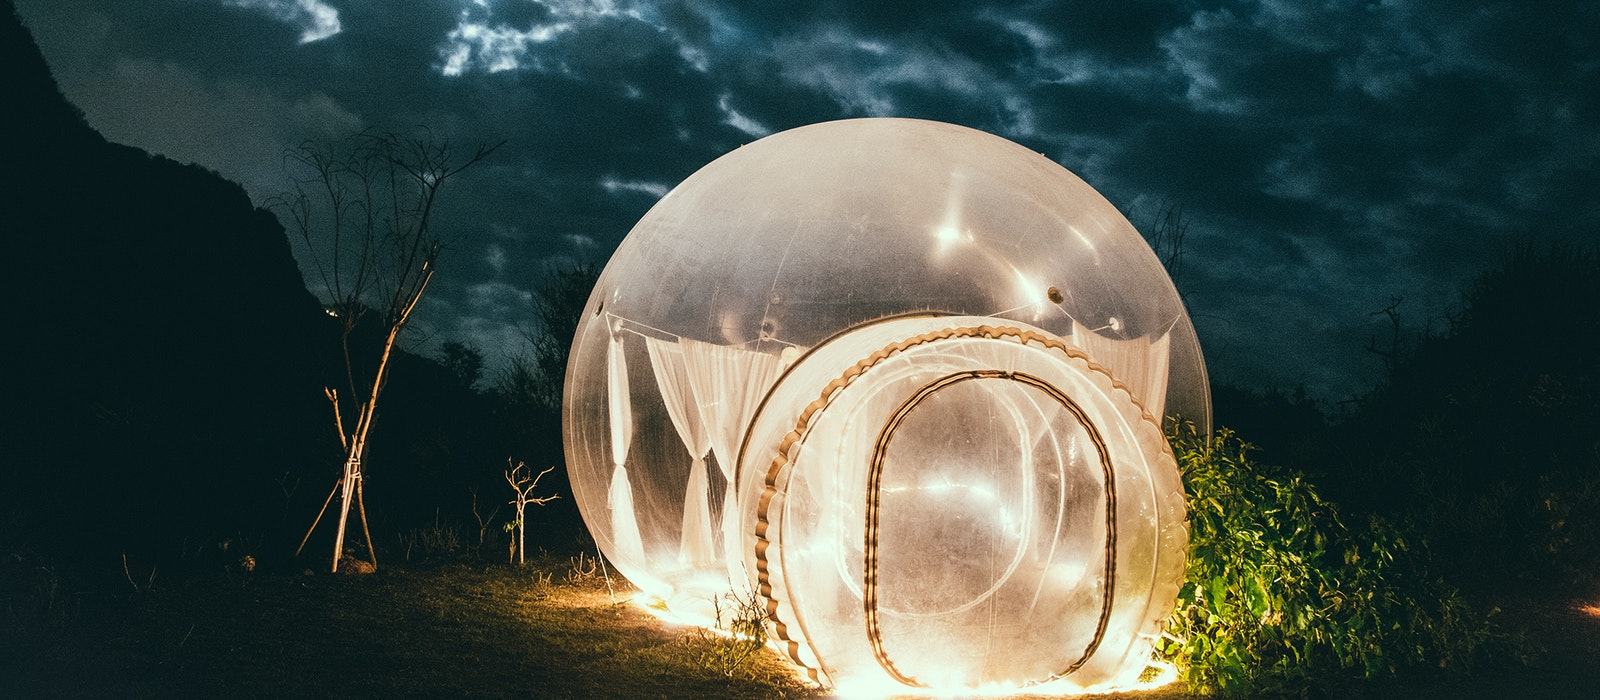 There are bubble hotels everywhere from Bali to Ireland these days. But are they worth it?